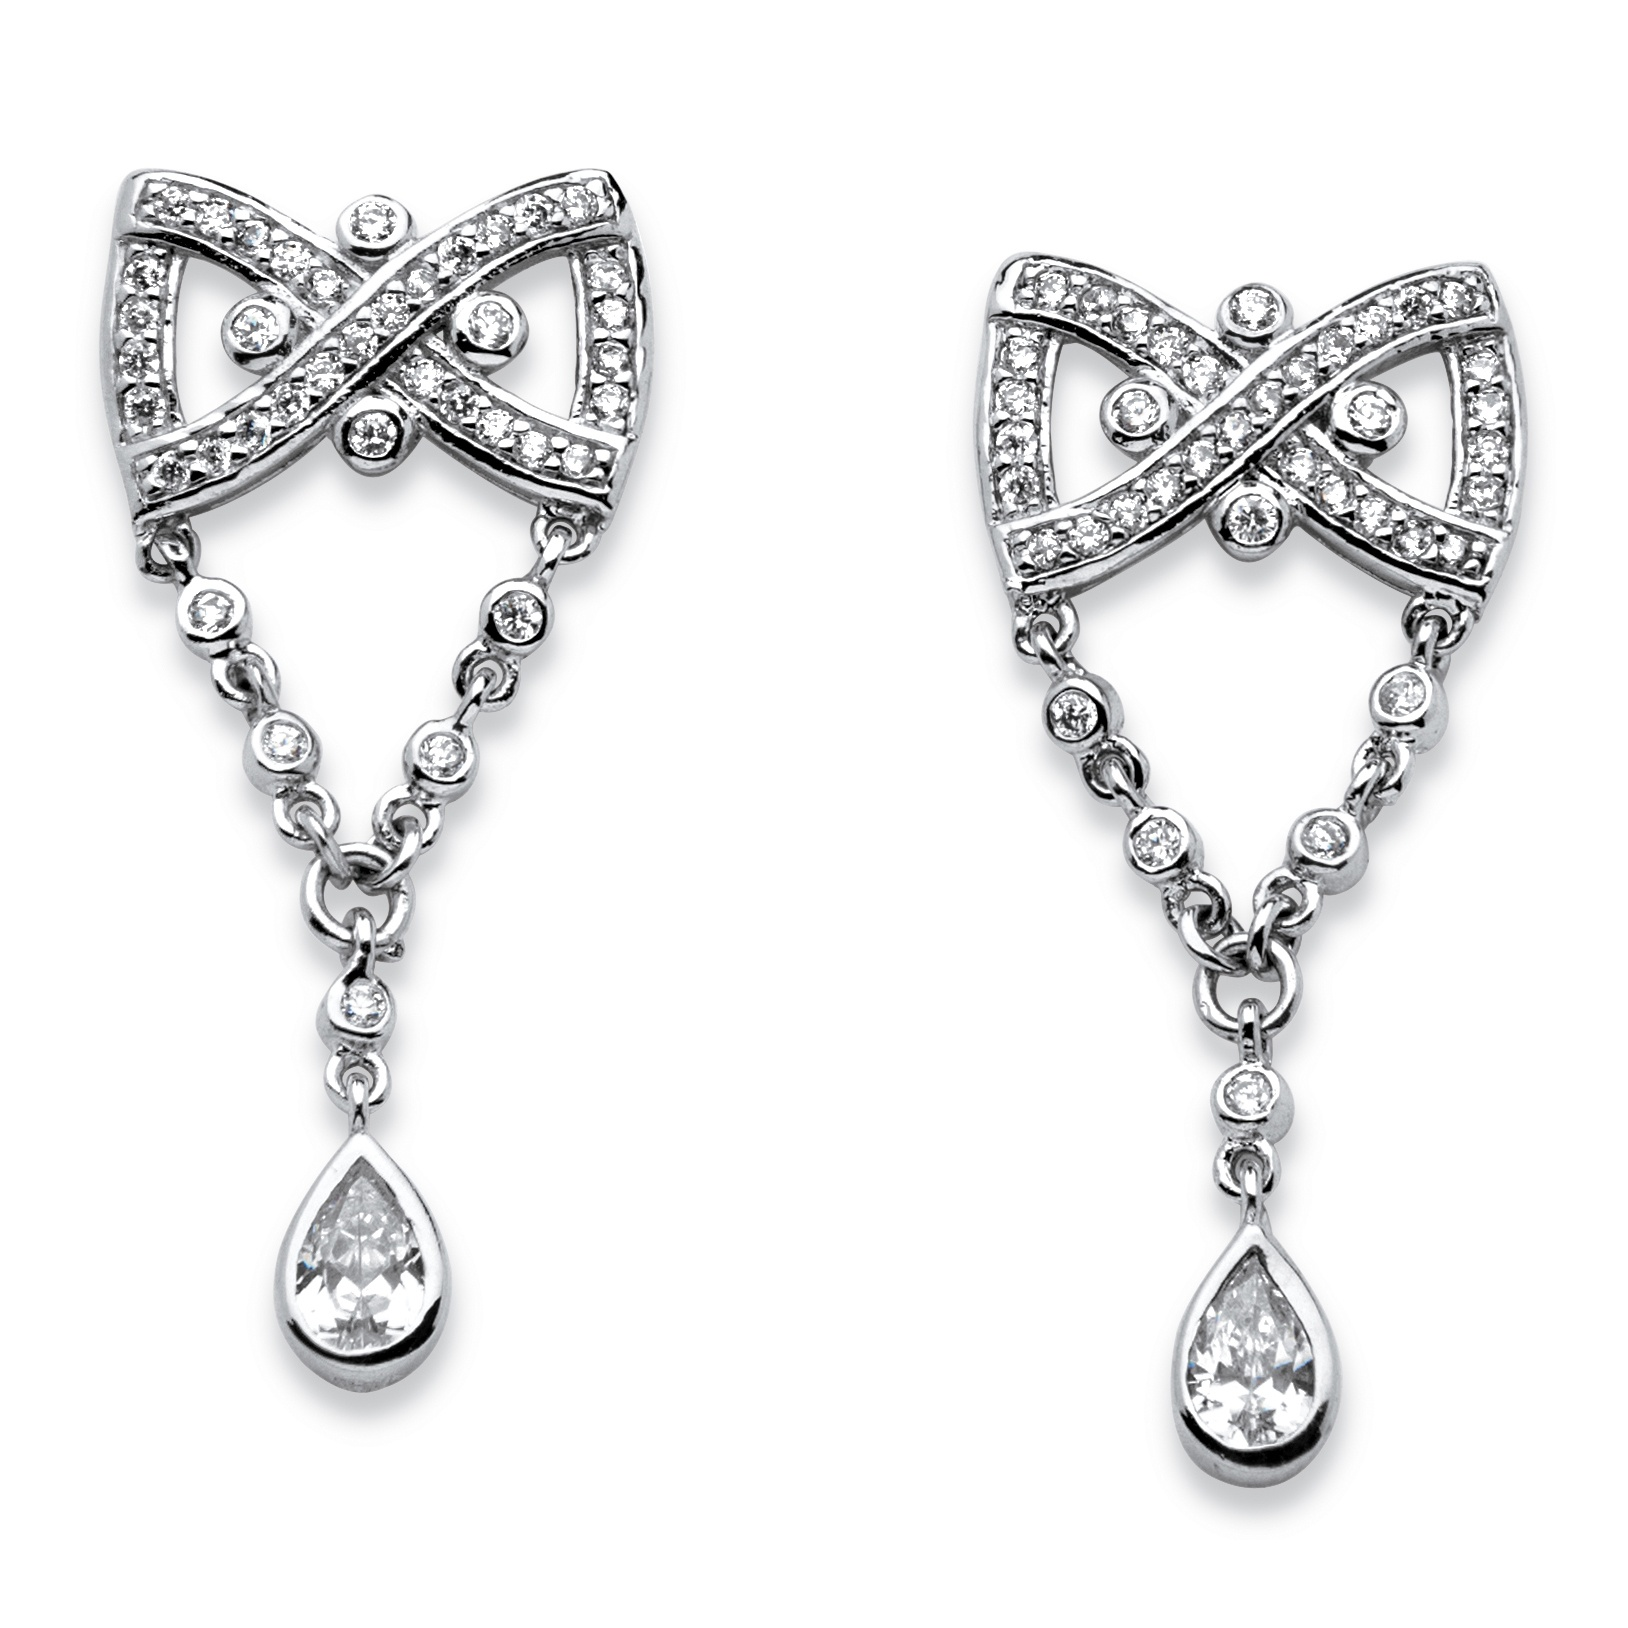 1.59 TCW Pear Drop Cubic Zirconia Vintage-Style Bow Tie Earrings in Platinum-Plated Finish